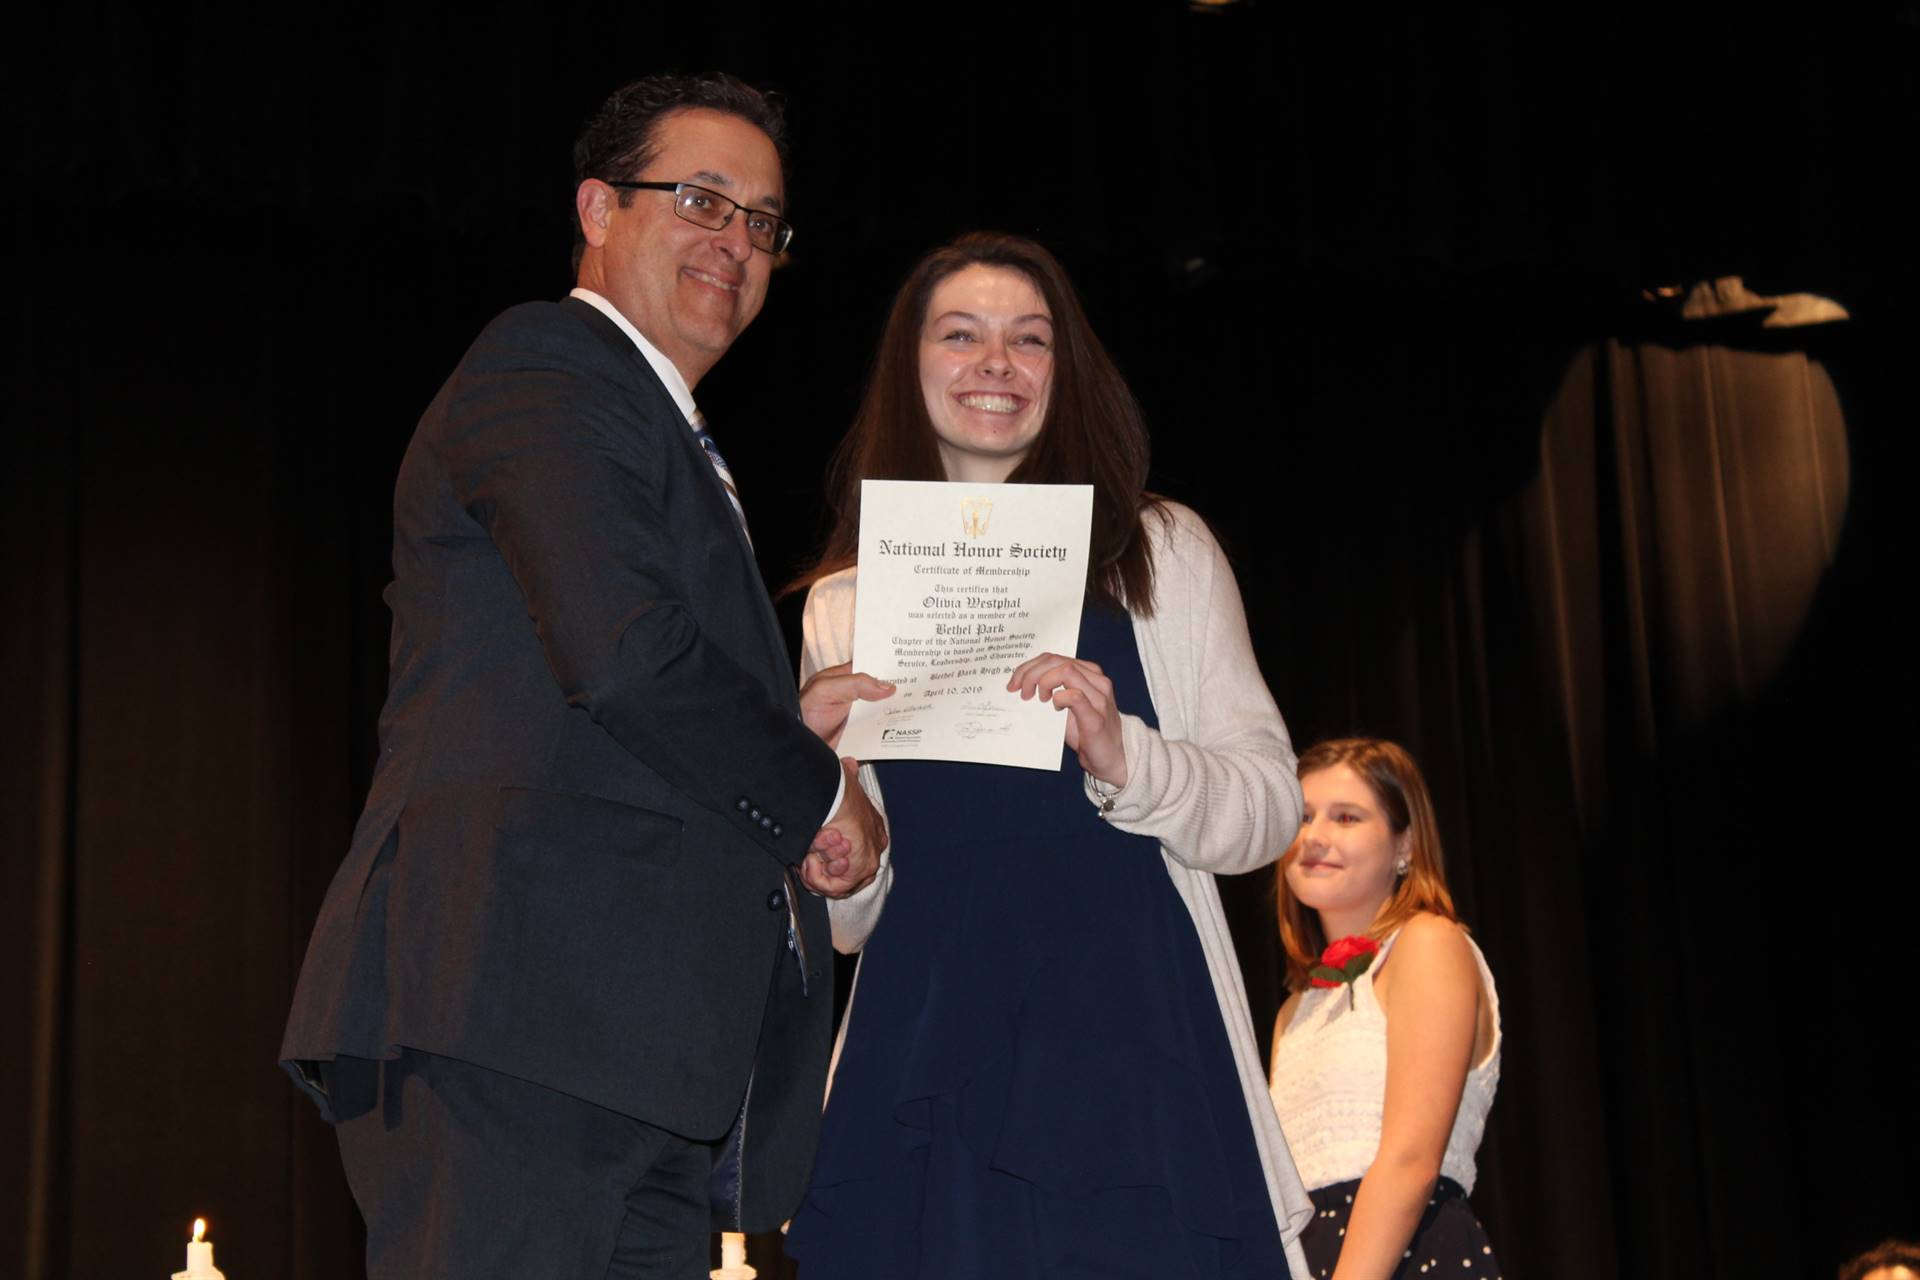 Student getting inducted into the National Honor Society